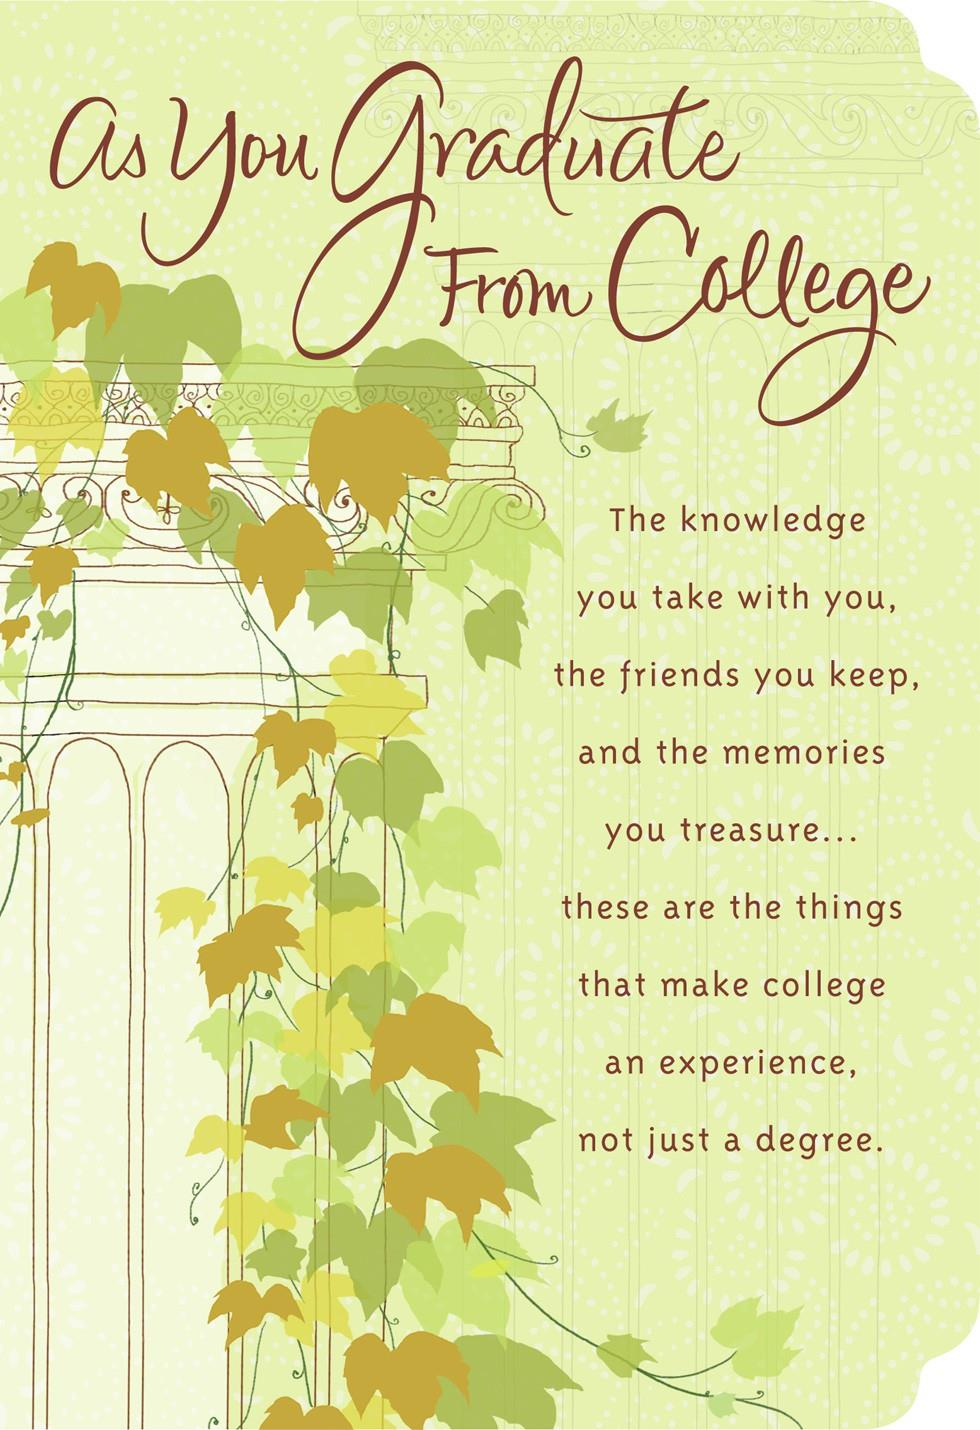 College graduation ivy greeting card greeting cards hallmark college graduation ivy greeting card kristyandbryce Gallery